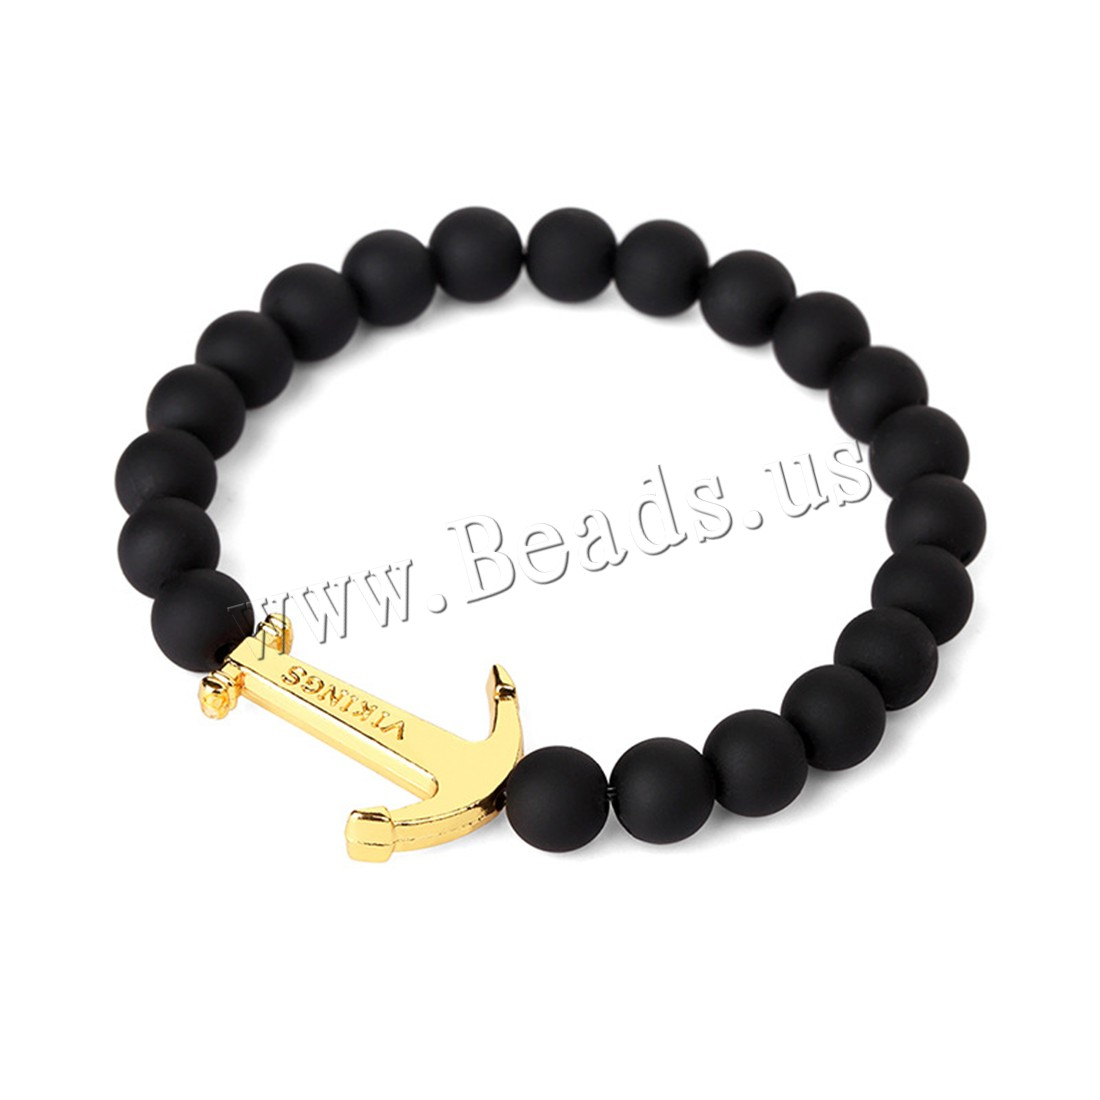 Buy Unisex Bracelet Rubber Zinc Alloy Anchor gold color plated beaded bracelet 25x20mm 8mm Sold Per Approx 7.8 Inch Strand